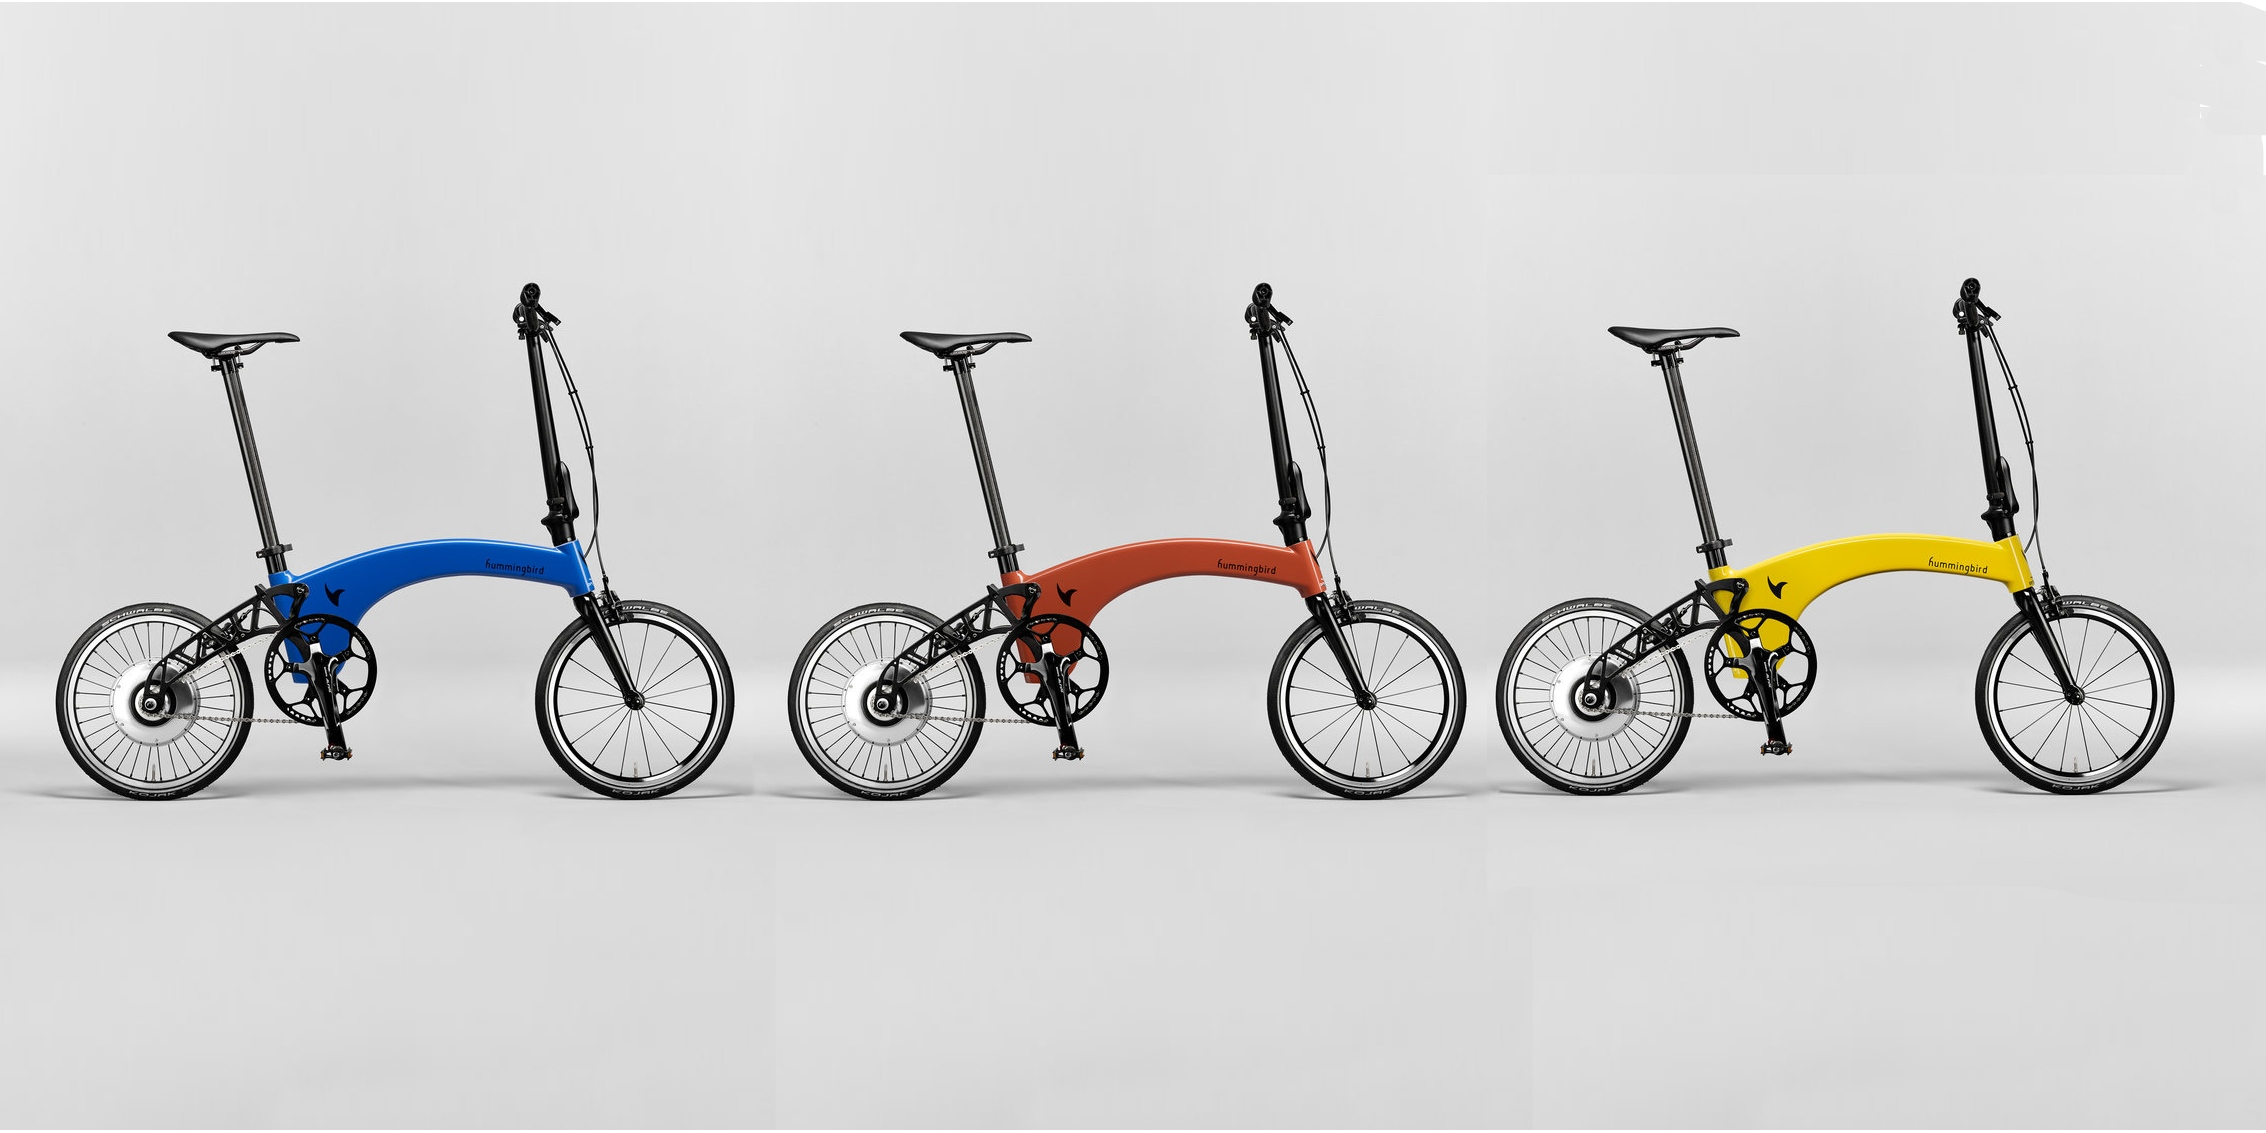 Prodrive's Hummingbird electric bicycle is a slick-looking 23 lb (10 kg) featherweight